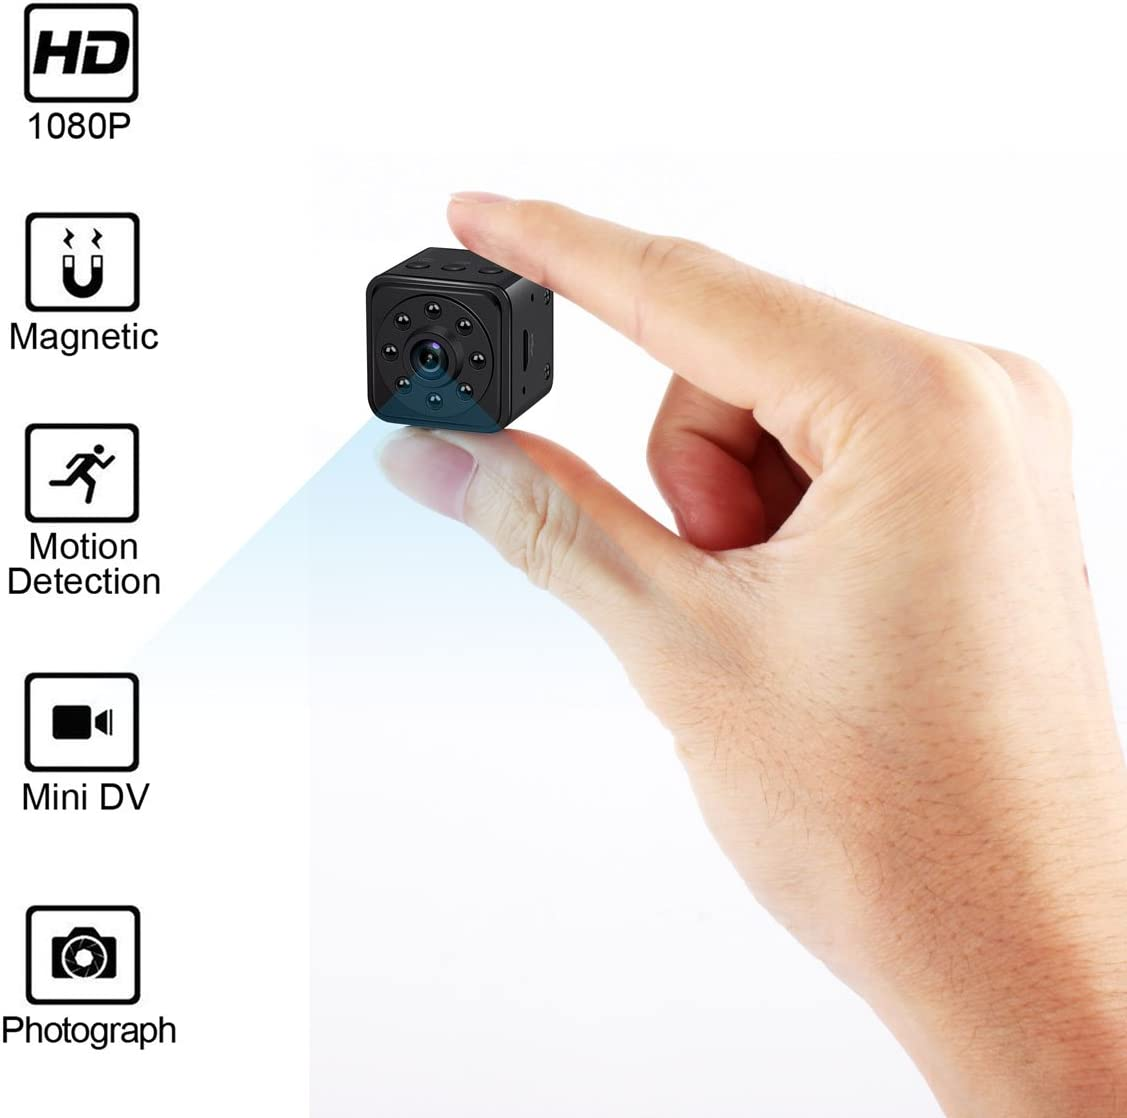 Mini Spy Camera Hidden Camera HoHoProv HD 1080P Portable Mini Nanny Cam Security Camera with Motion Detection and Night Vision